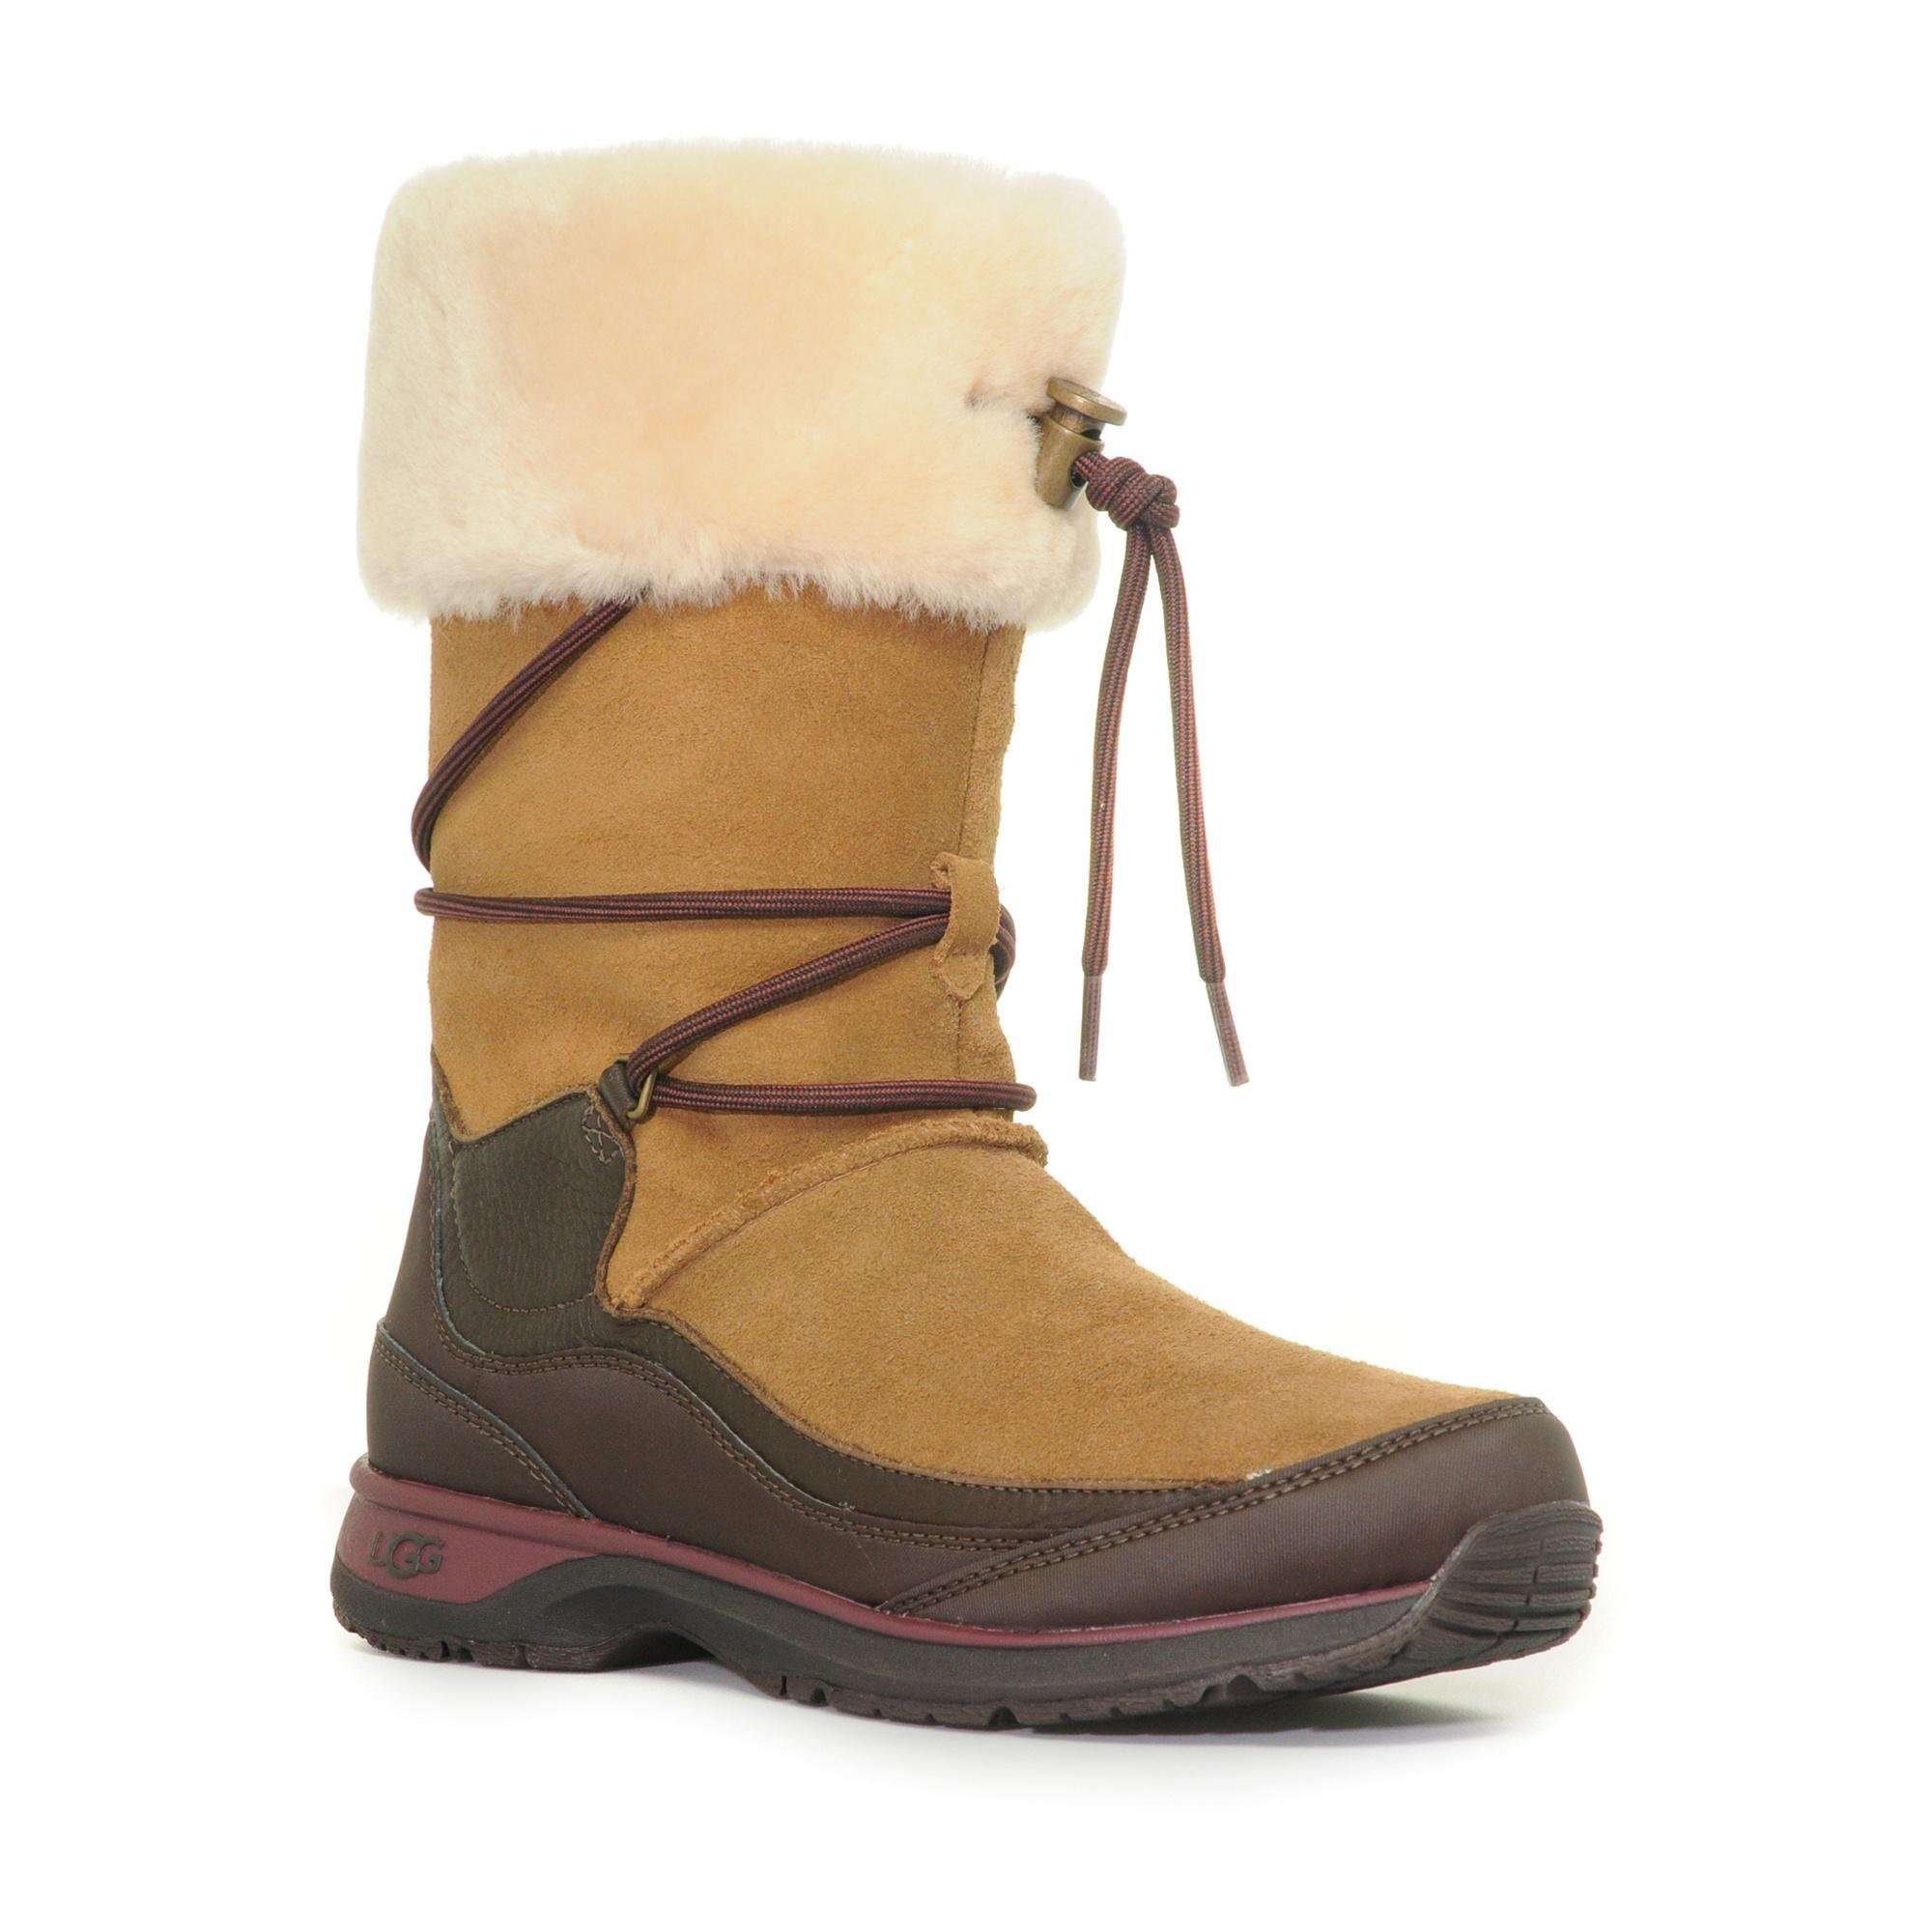 UGG Women's Orrellen Waterproof Winter Boot